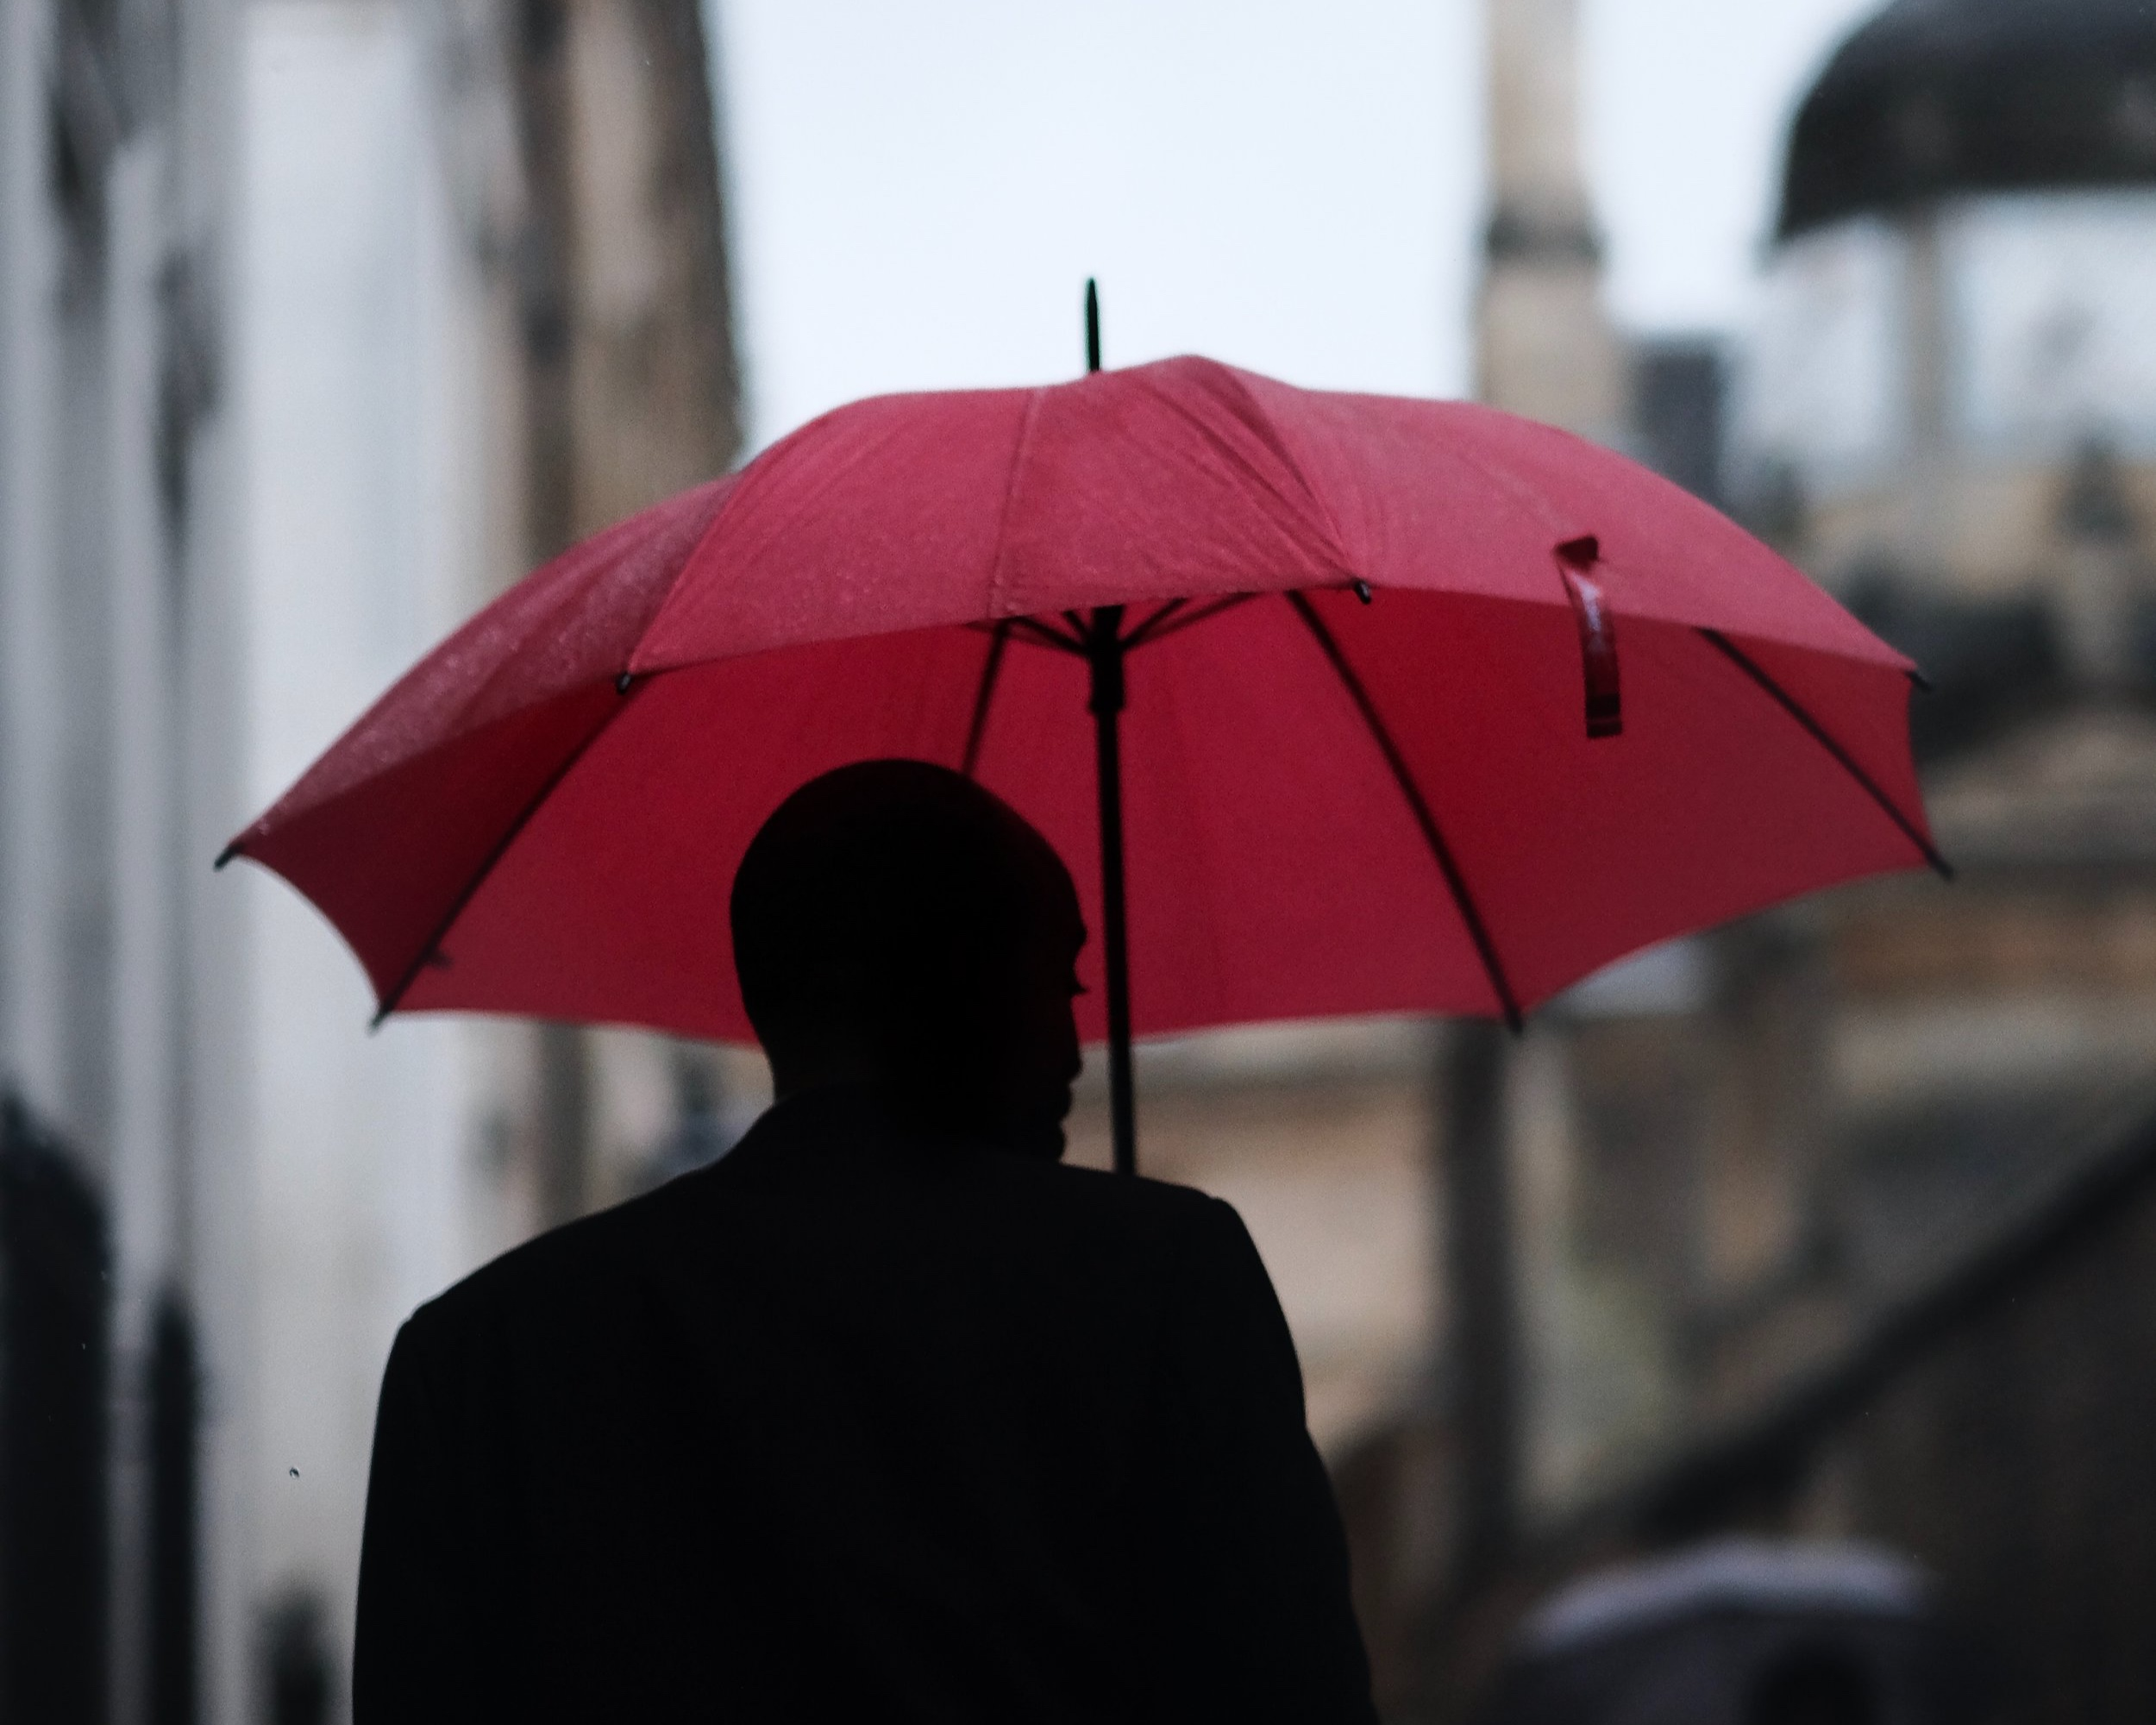 Umbrella & More - Our agency team can help you understand when it is most appropriate to purchase a commercial umbrella policy.  provide advice on Business Owner's Policies (BOP), Environmental Liability, Director's and Officer's Liability, Employment Practices Liability, and so much more.